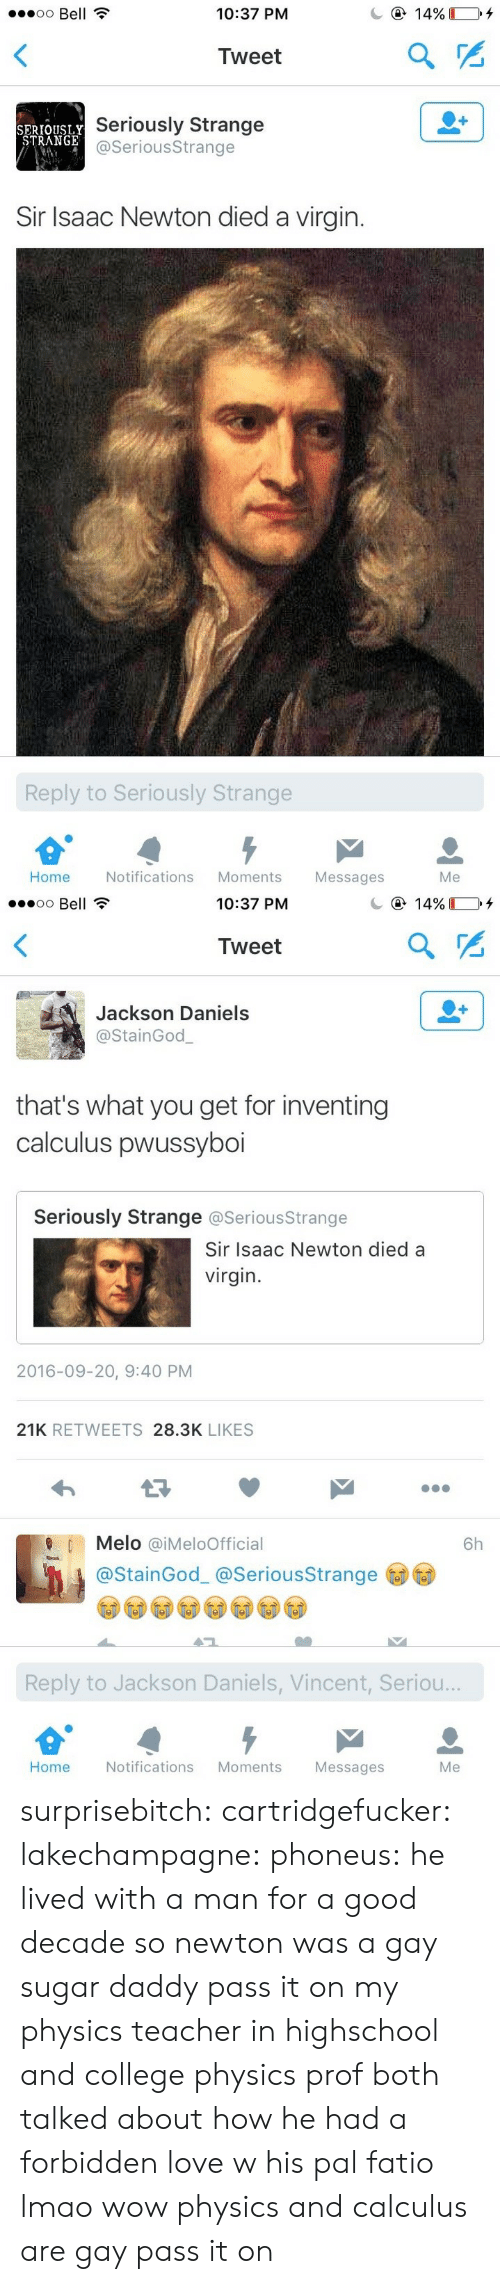 isaac: oo Bell  10:37 PM  Tweet  SERTOUSLY  STRANGE  Seriously Strange  @SeriousStrange  Sir Isaac Newton died a virgin.  Reply to Seriously Strange  Home Notifications Moments Messages  Me   10:37 PM  Tweet  Jackson Daniels  @StainGod  that's what you get for inventing  calculus pwussyboi  Seriously Strange @SeriousStrange  Sir Isaac Newton died a  virgin  2016-09-20, 9:40 PM  21K RETWEETS 28.3K LIKES  Melo @iMeloOfficial  6h  @StainGod_ @SeriousStrange  Reply to Jackson Daniels, Vincent, Seriou..  Home  Notifications Moments  Messages  Me surprisebitch:  cartridgefucker: lakechampagne:  phoneus: he lived with a man for a good decade so newton was a gay sugar daddy pass it on  my physics teacher in highschool and college physics prof both talked about how he had a forbidden love w his pal fatio lmao  wow physics and calculus are gay pass it on